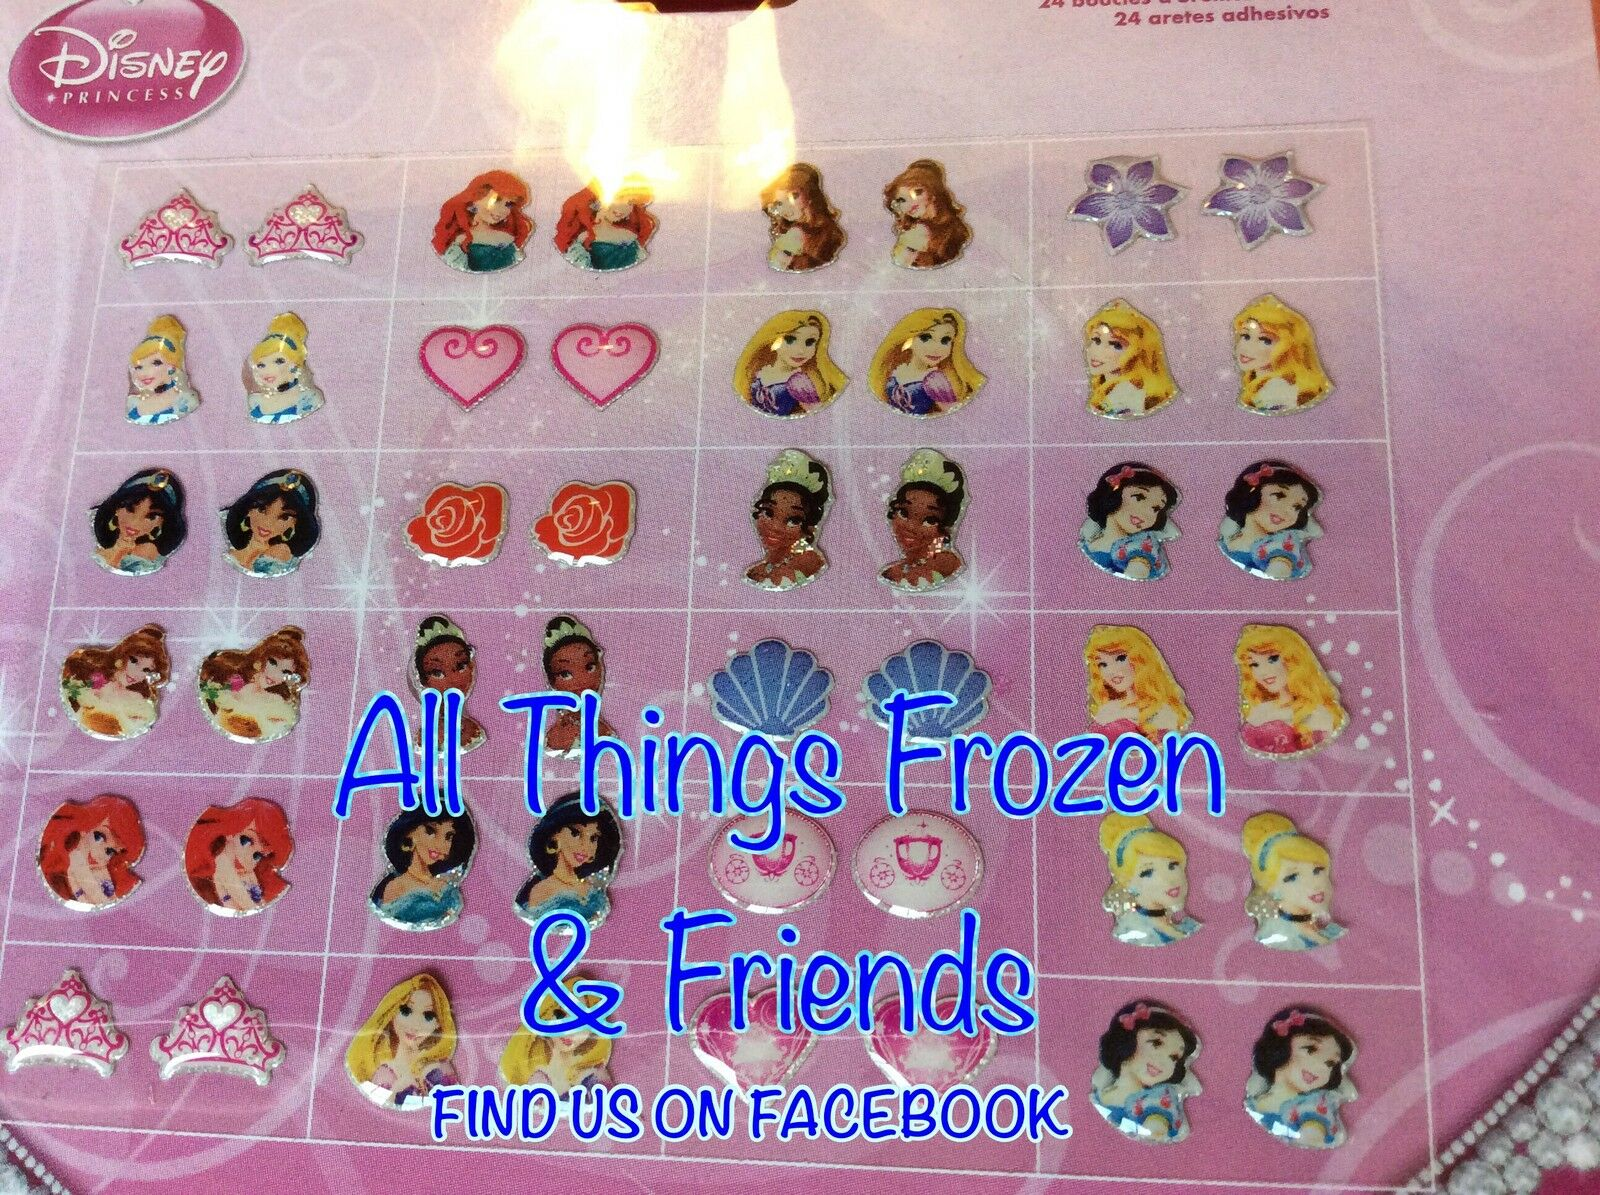 FairyPinkBob / All Things Frozen